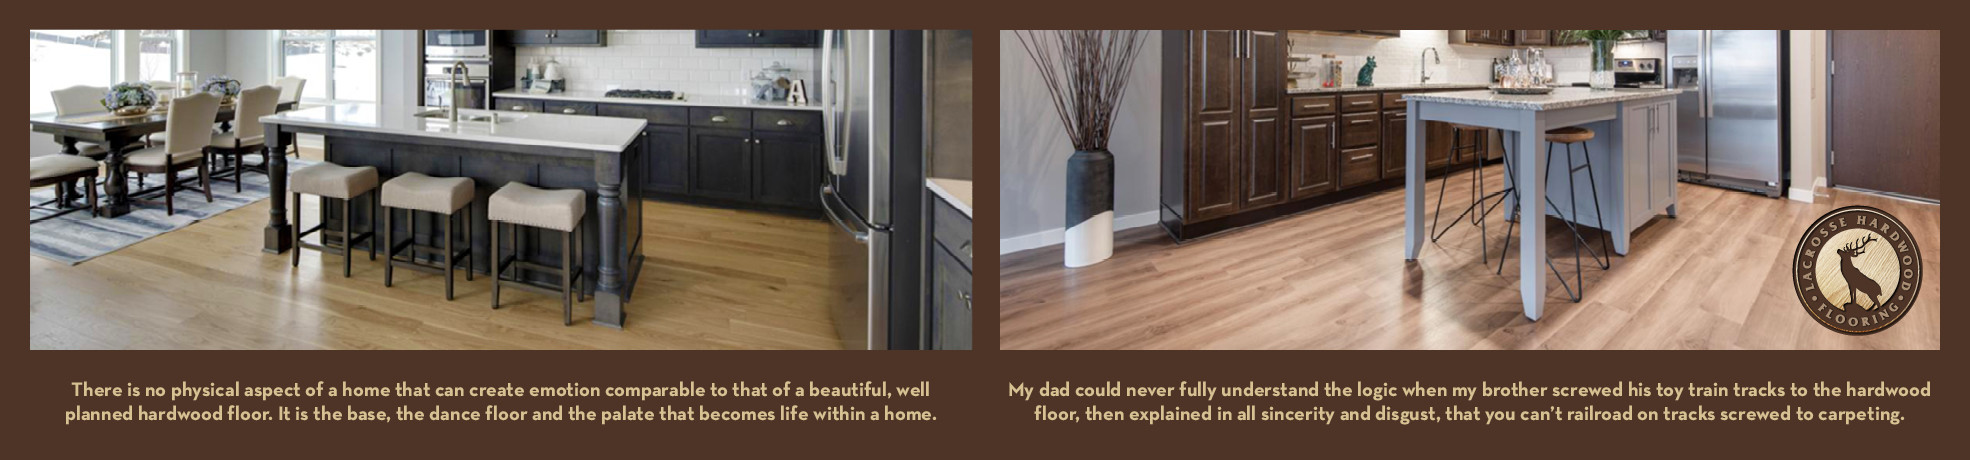 hickory hardwood flooring prices of lacrosse hardwood flooring walnut white oak red oak hickory with lhfsliderv24